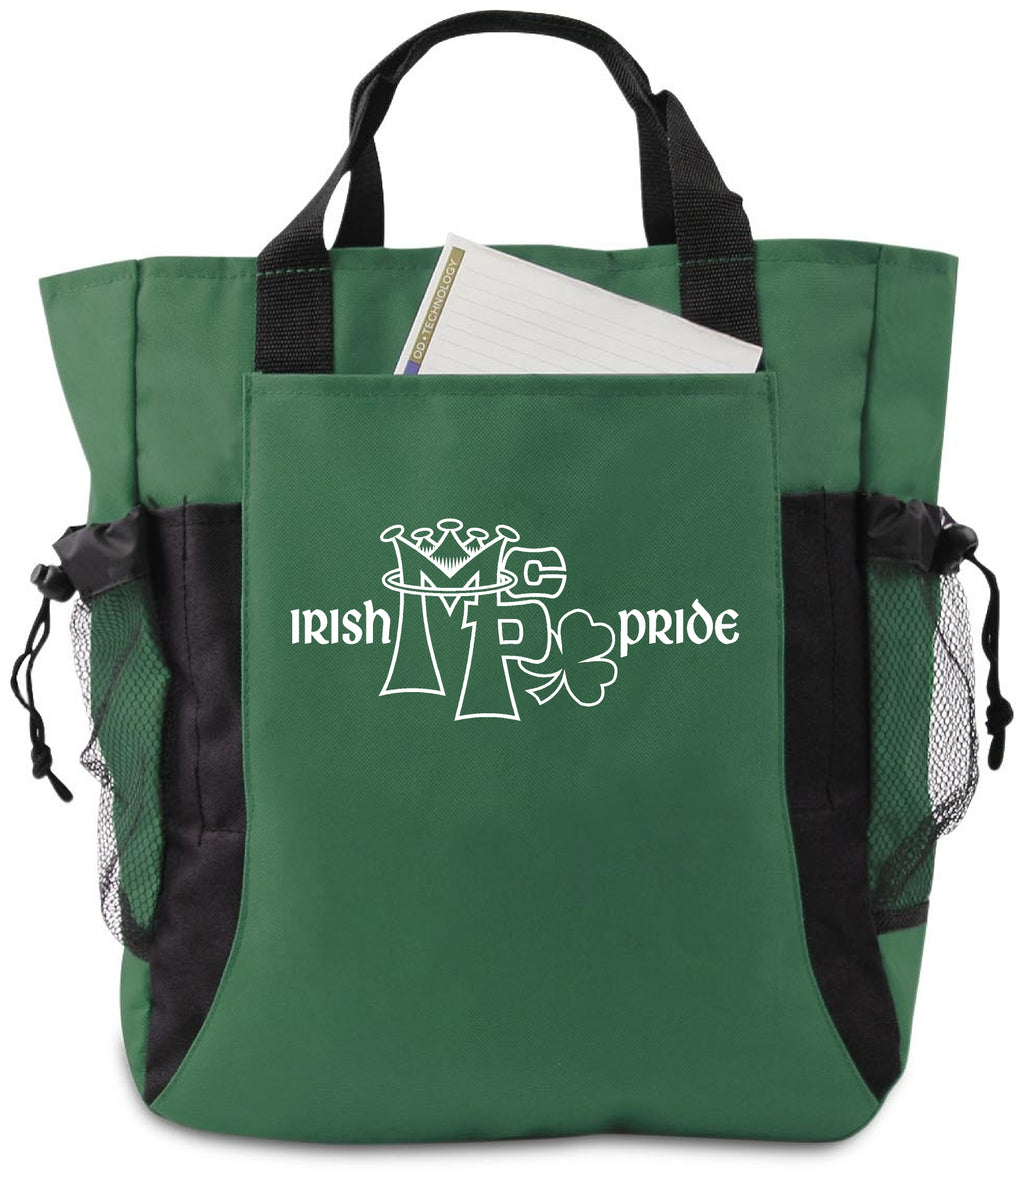 Irish pride (back pack style, tote bag)